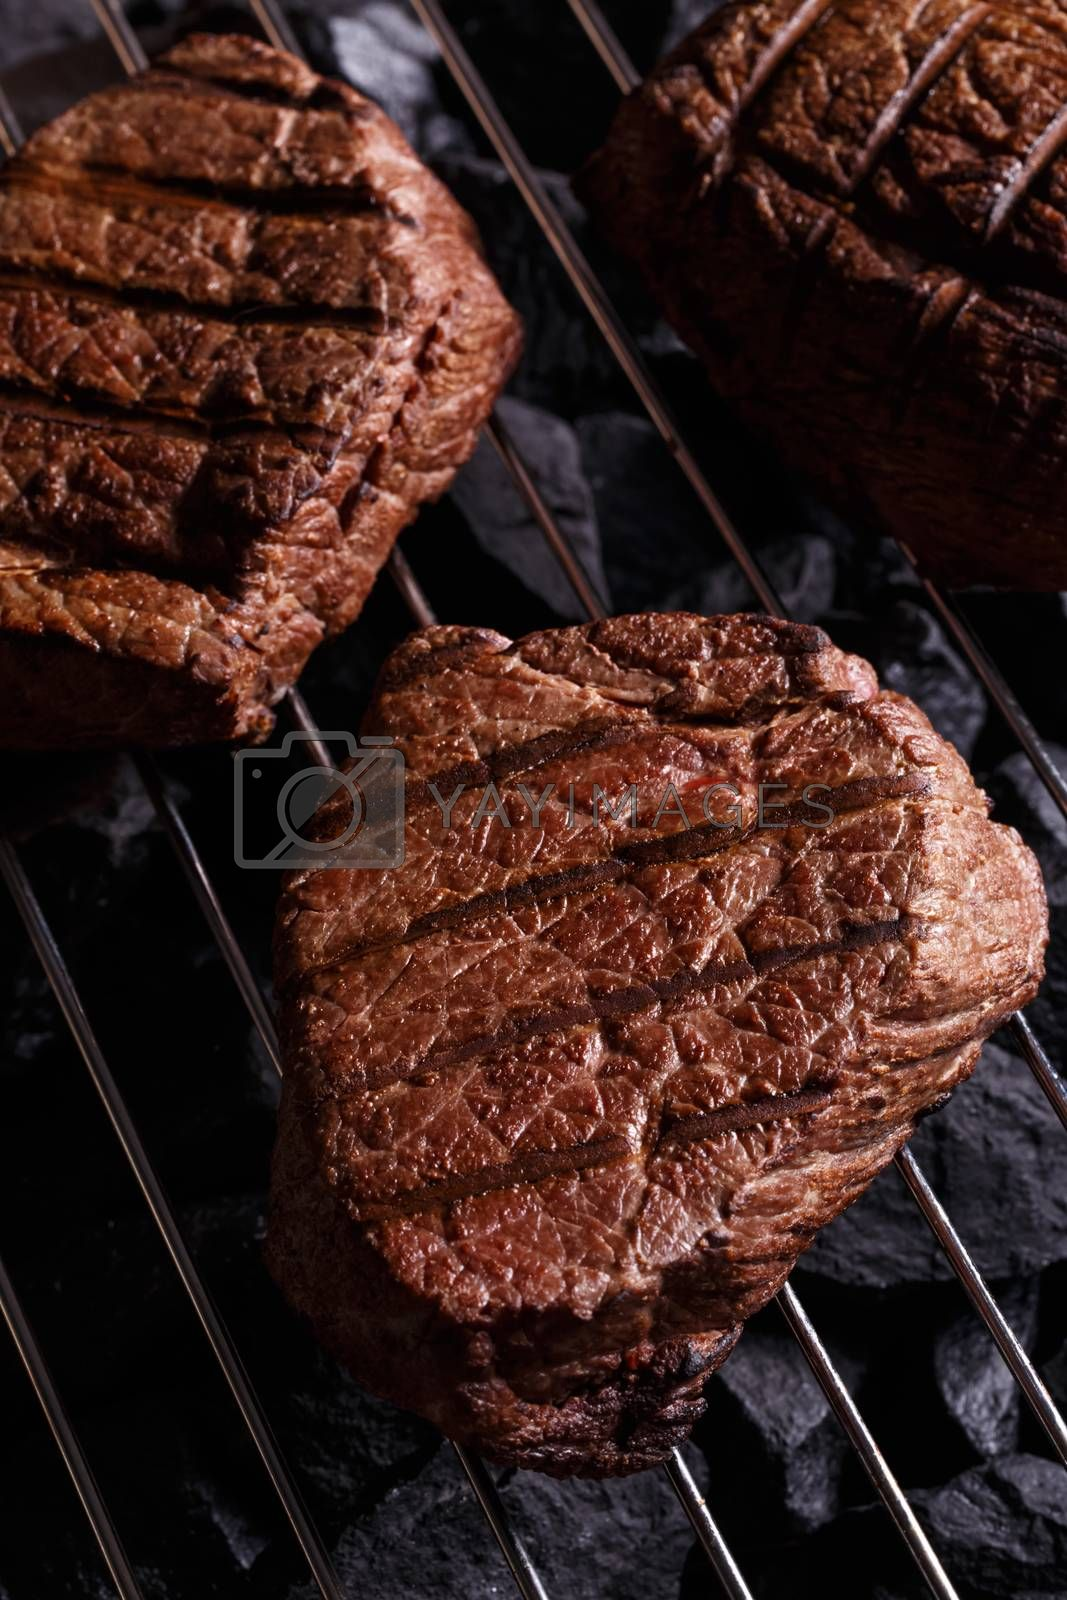 Royalty free image of Beef steak on a barbecue grill by primopiano